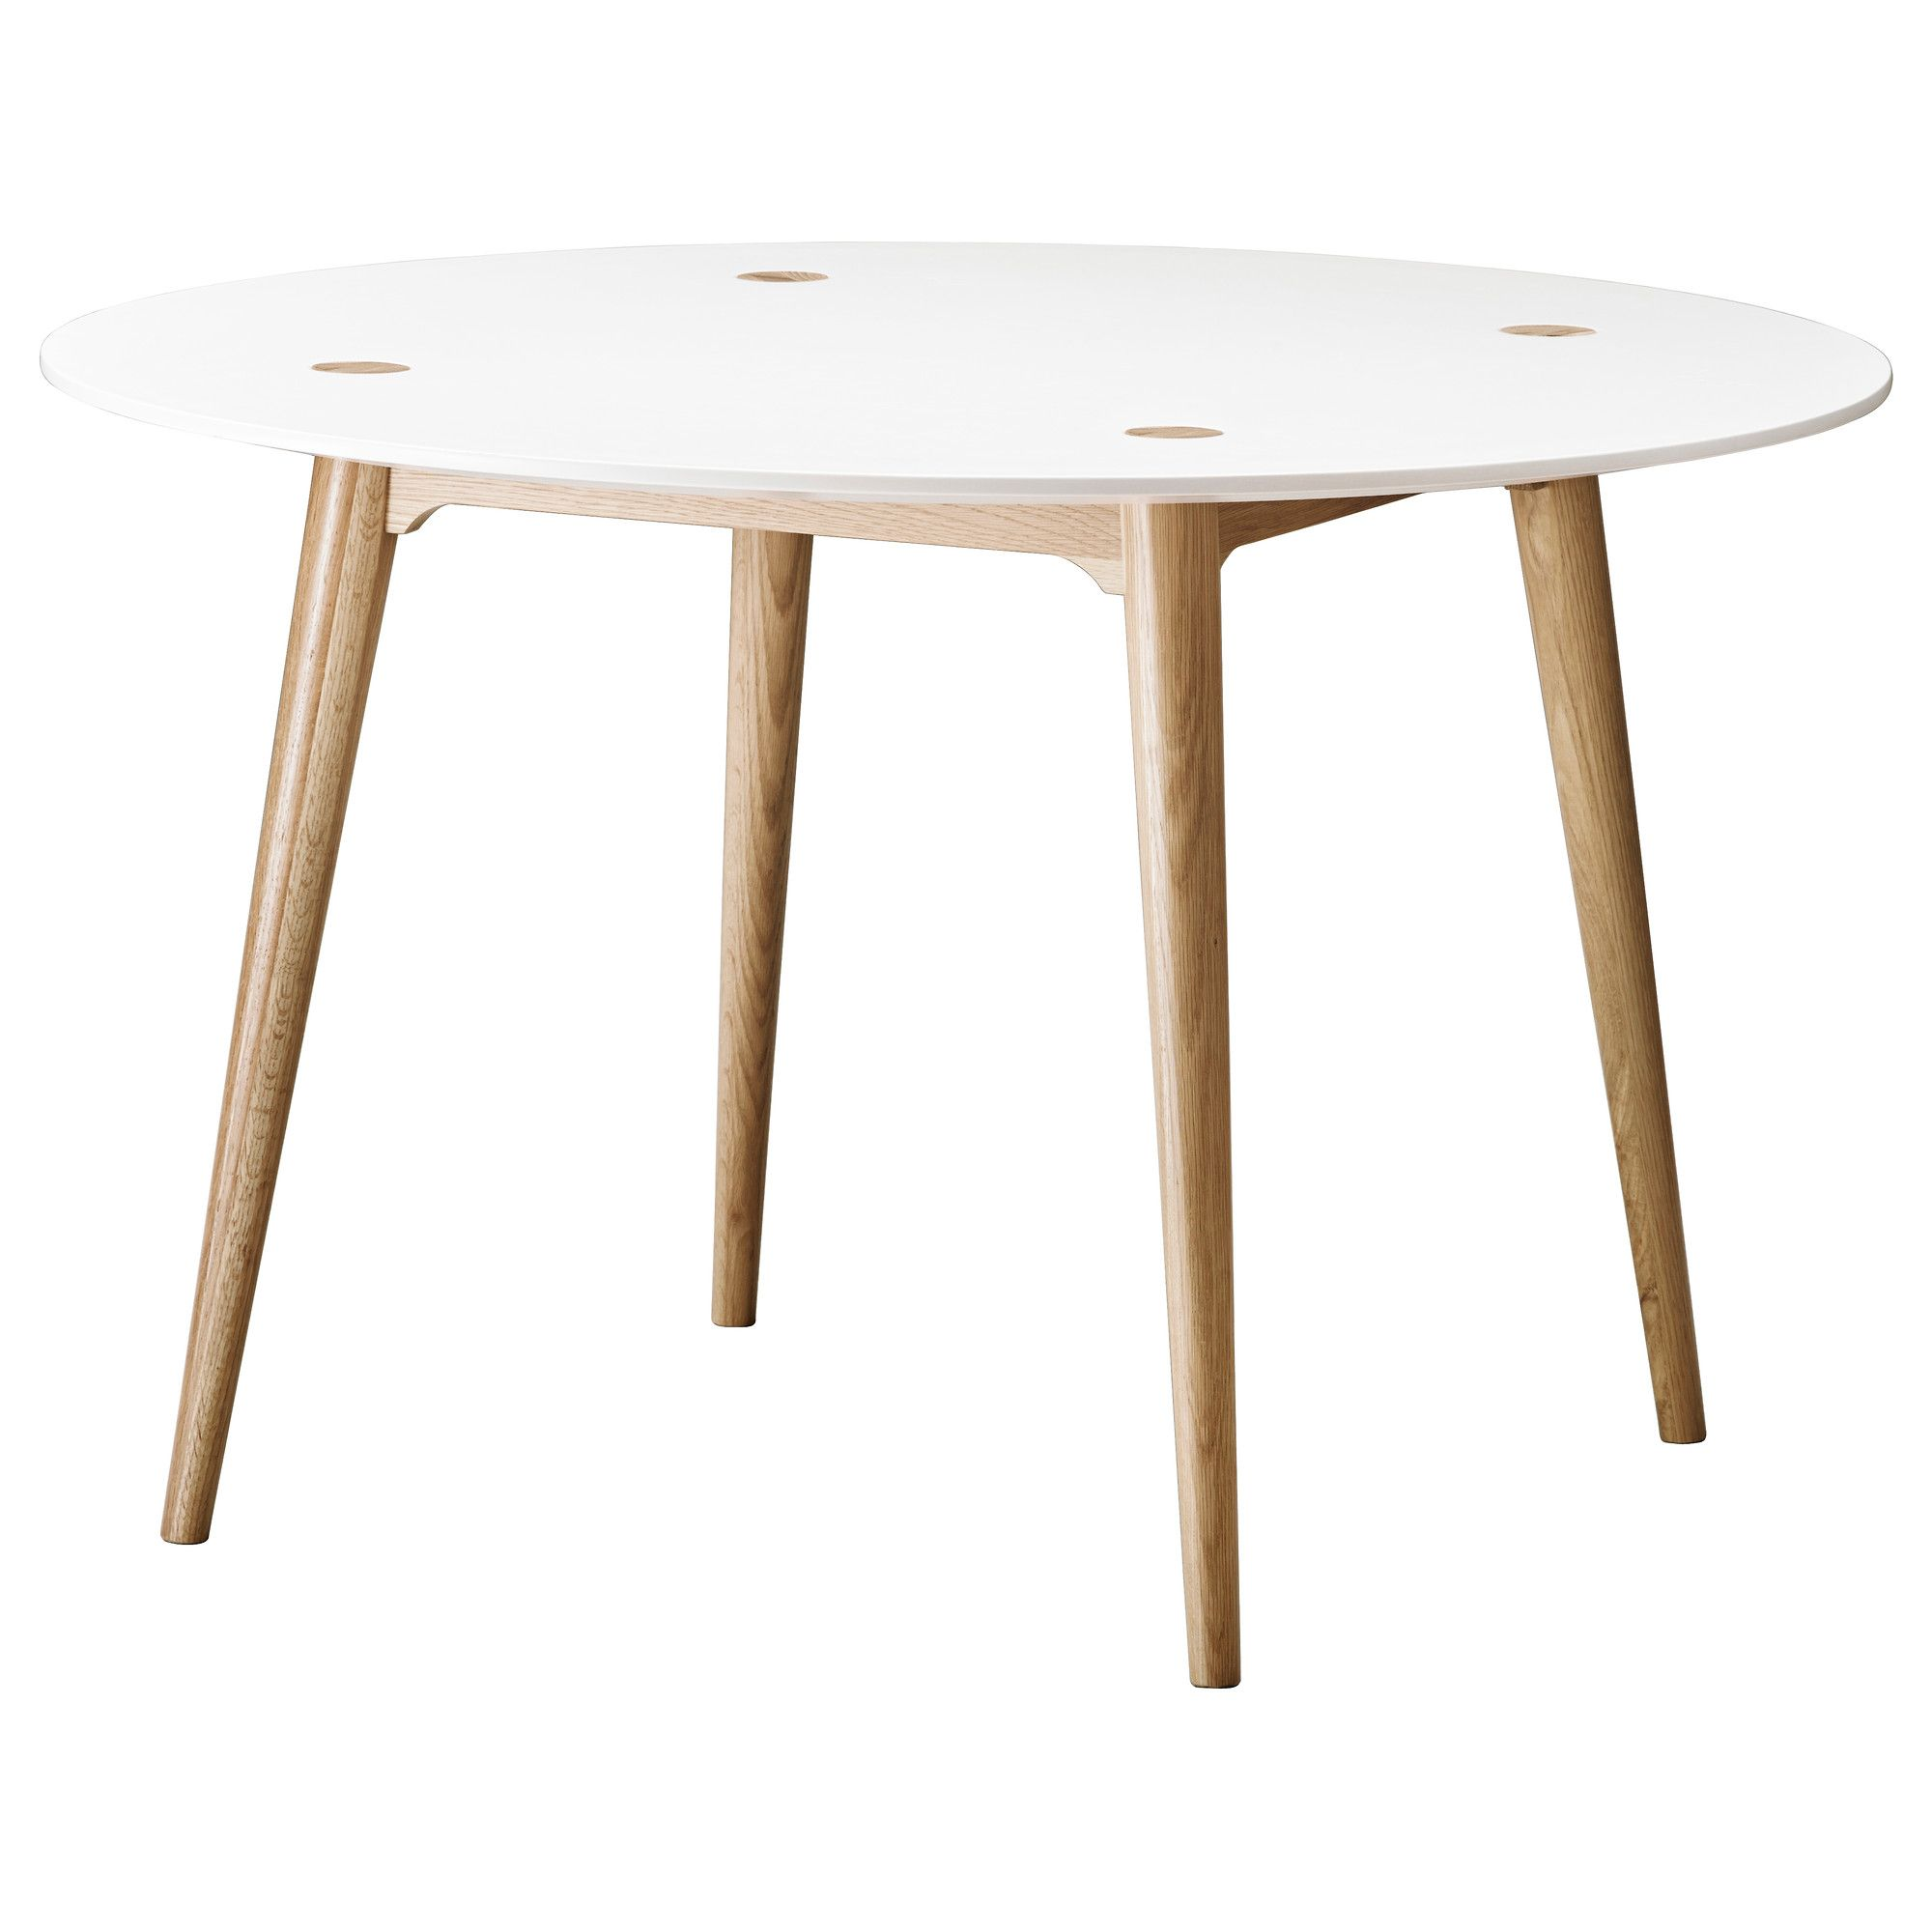 Base for large kitchen table? TRENDIG 2013 Dining table ...